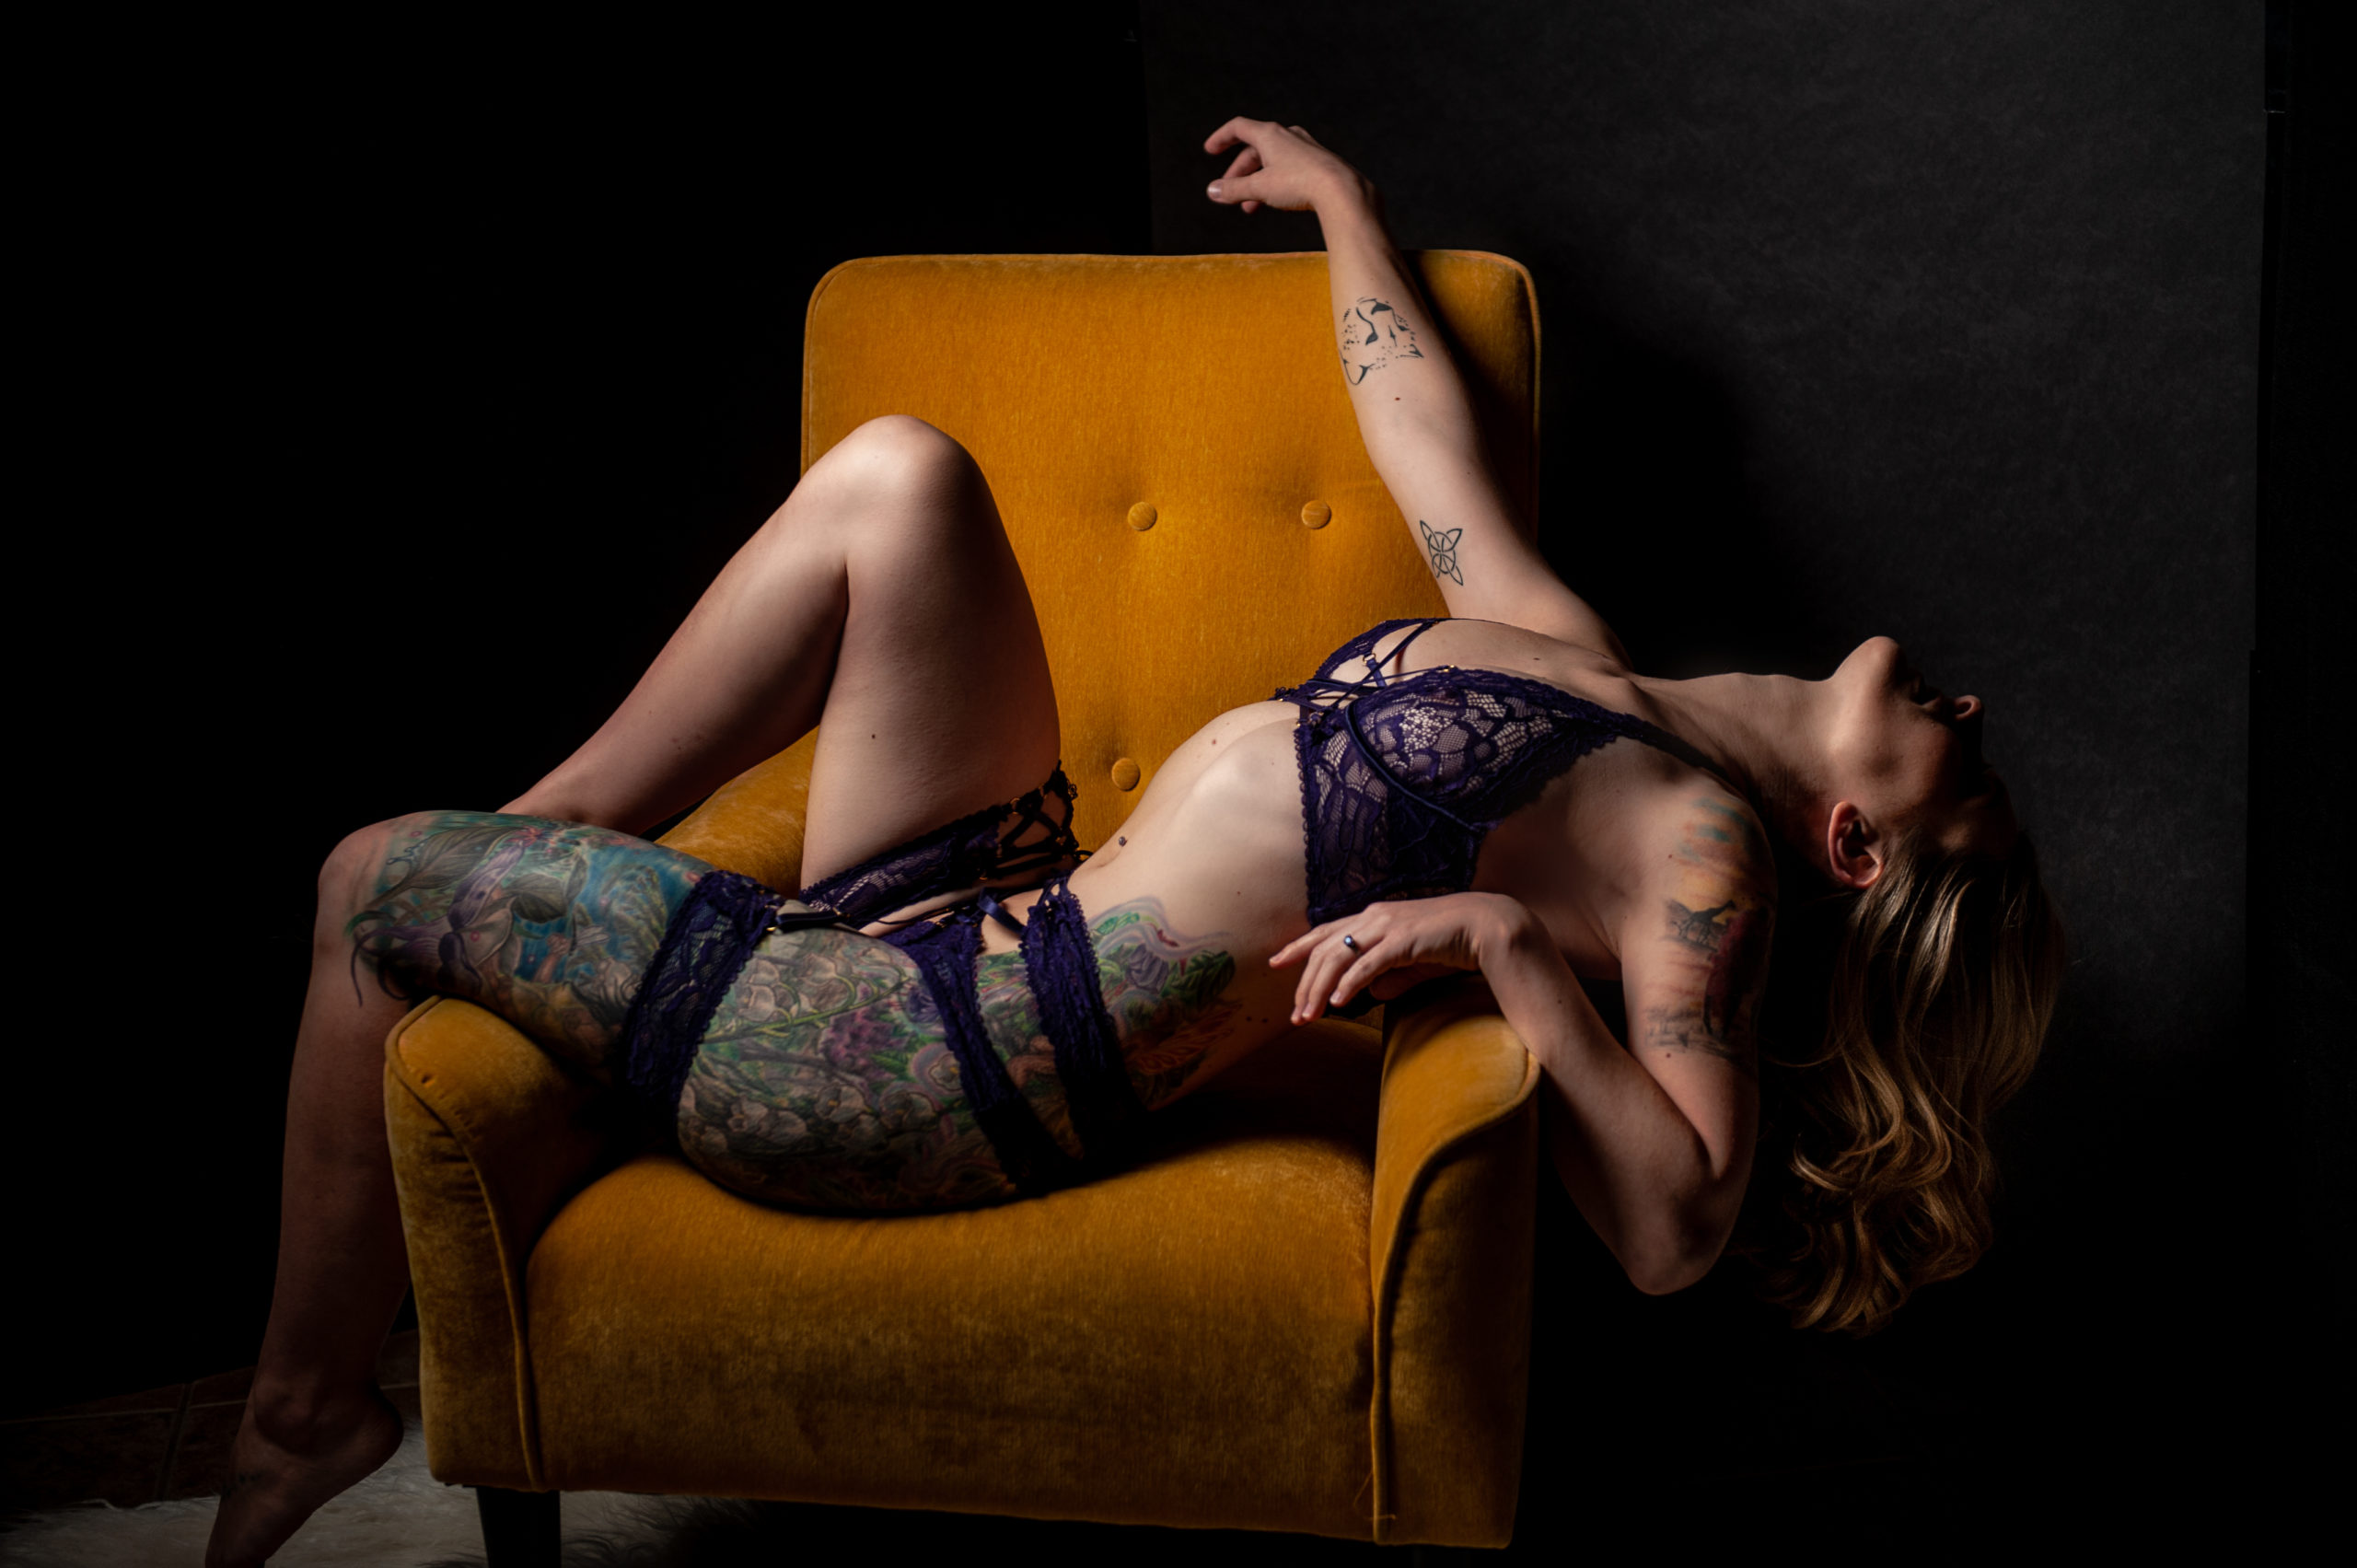 0003-JS-flagstaff-boudoir-crave-session-DSC_4702-Edit-2019ther2studio